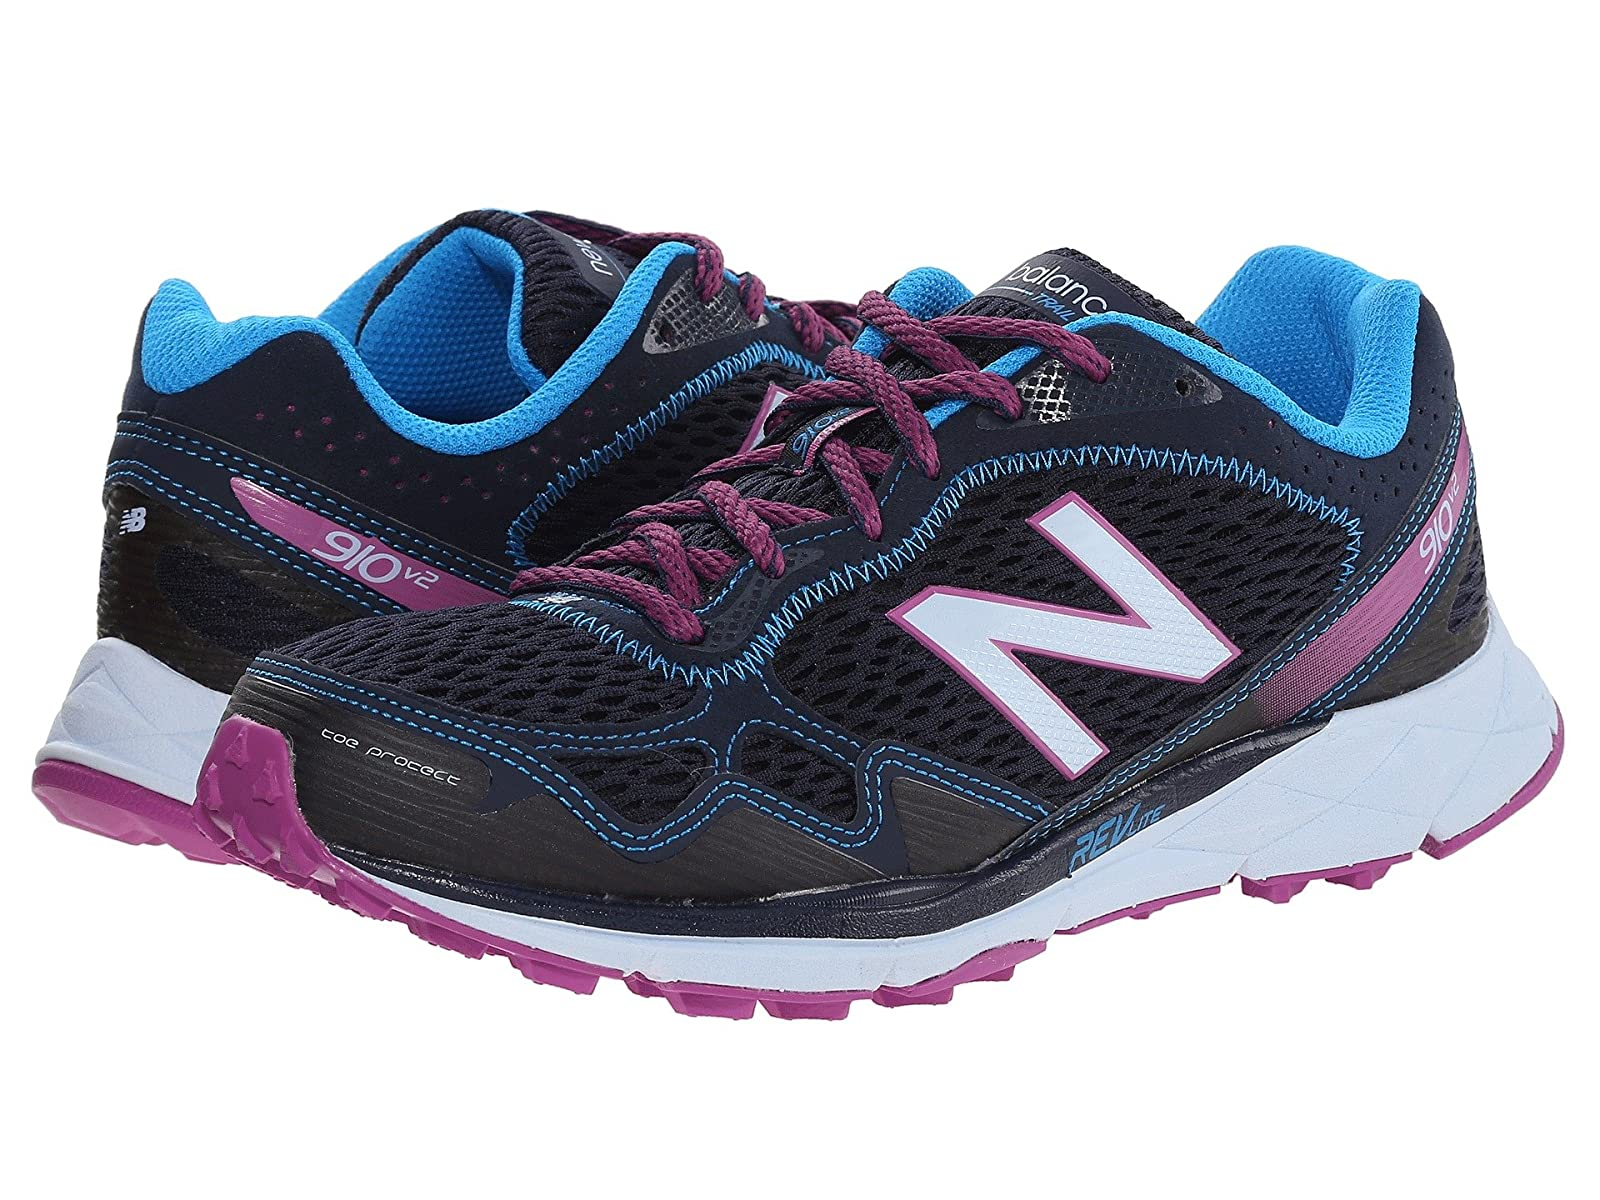 New Balance WT910v2Cheap and distinctive eye-catching shoes